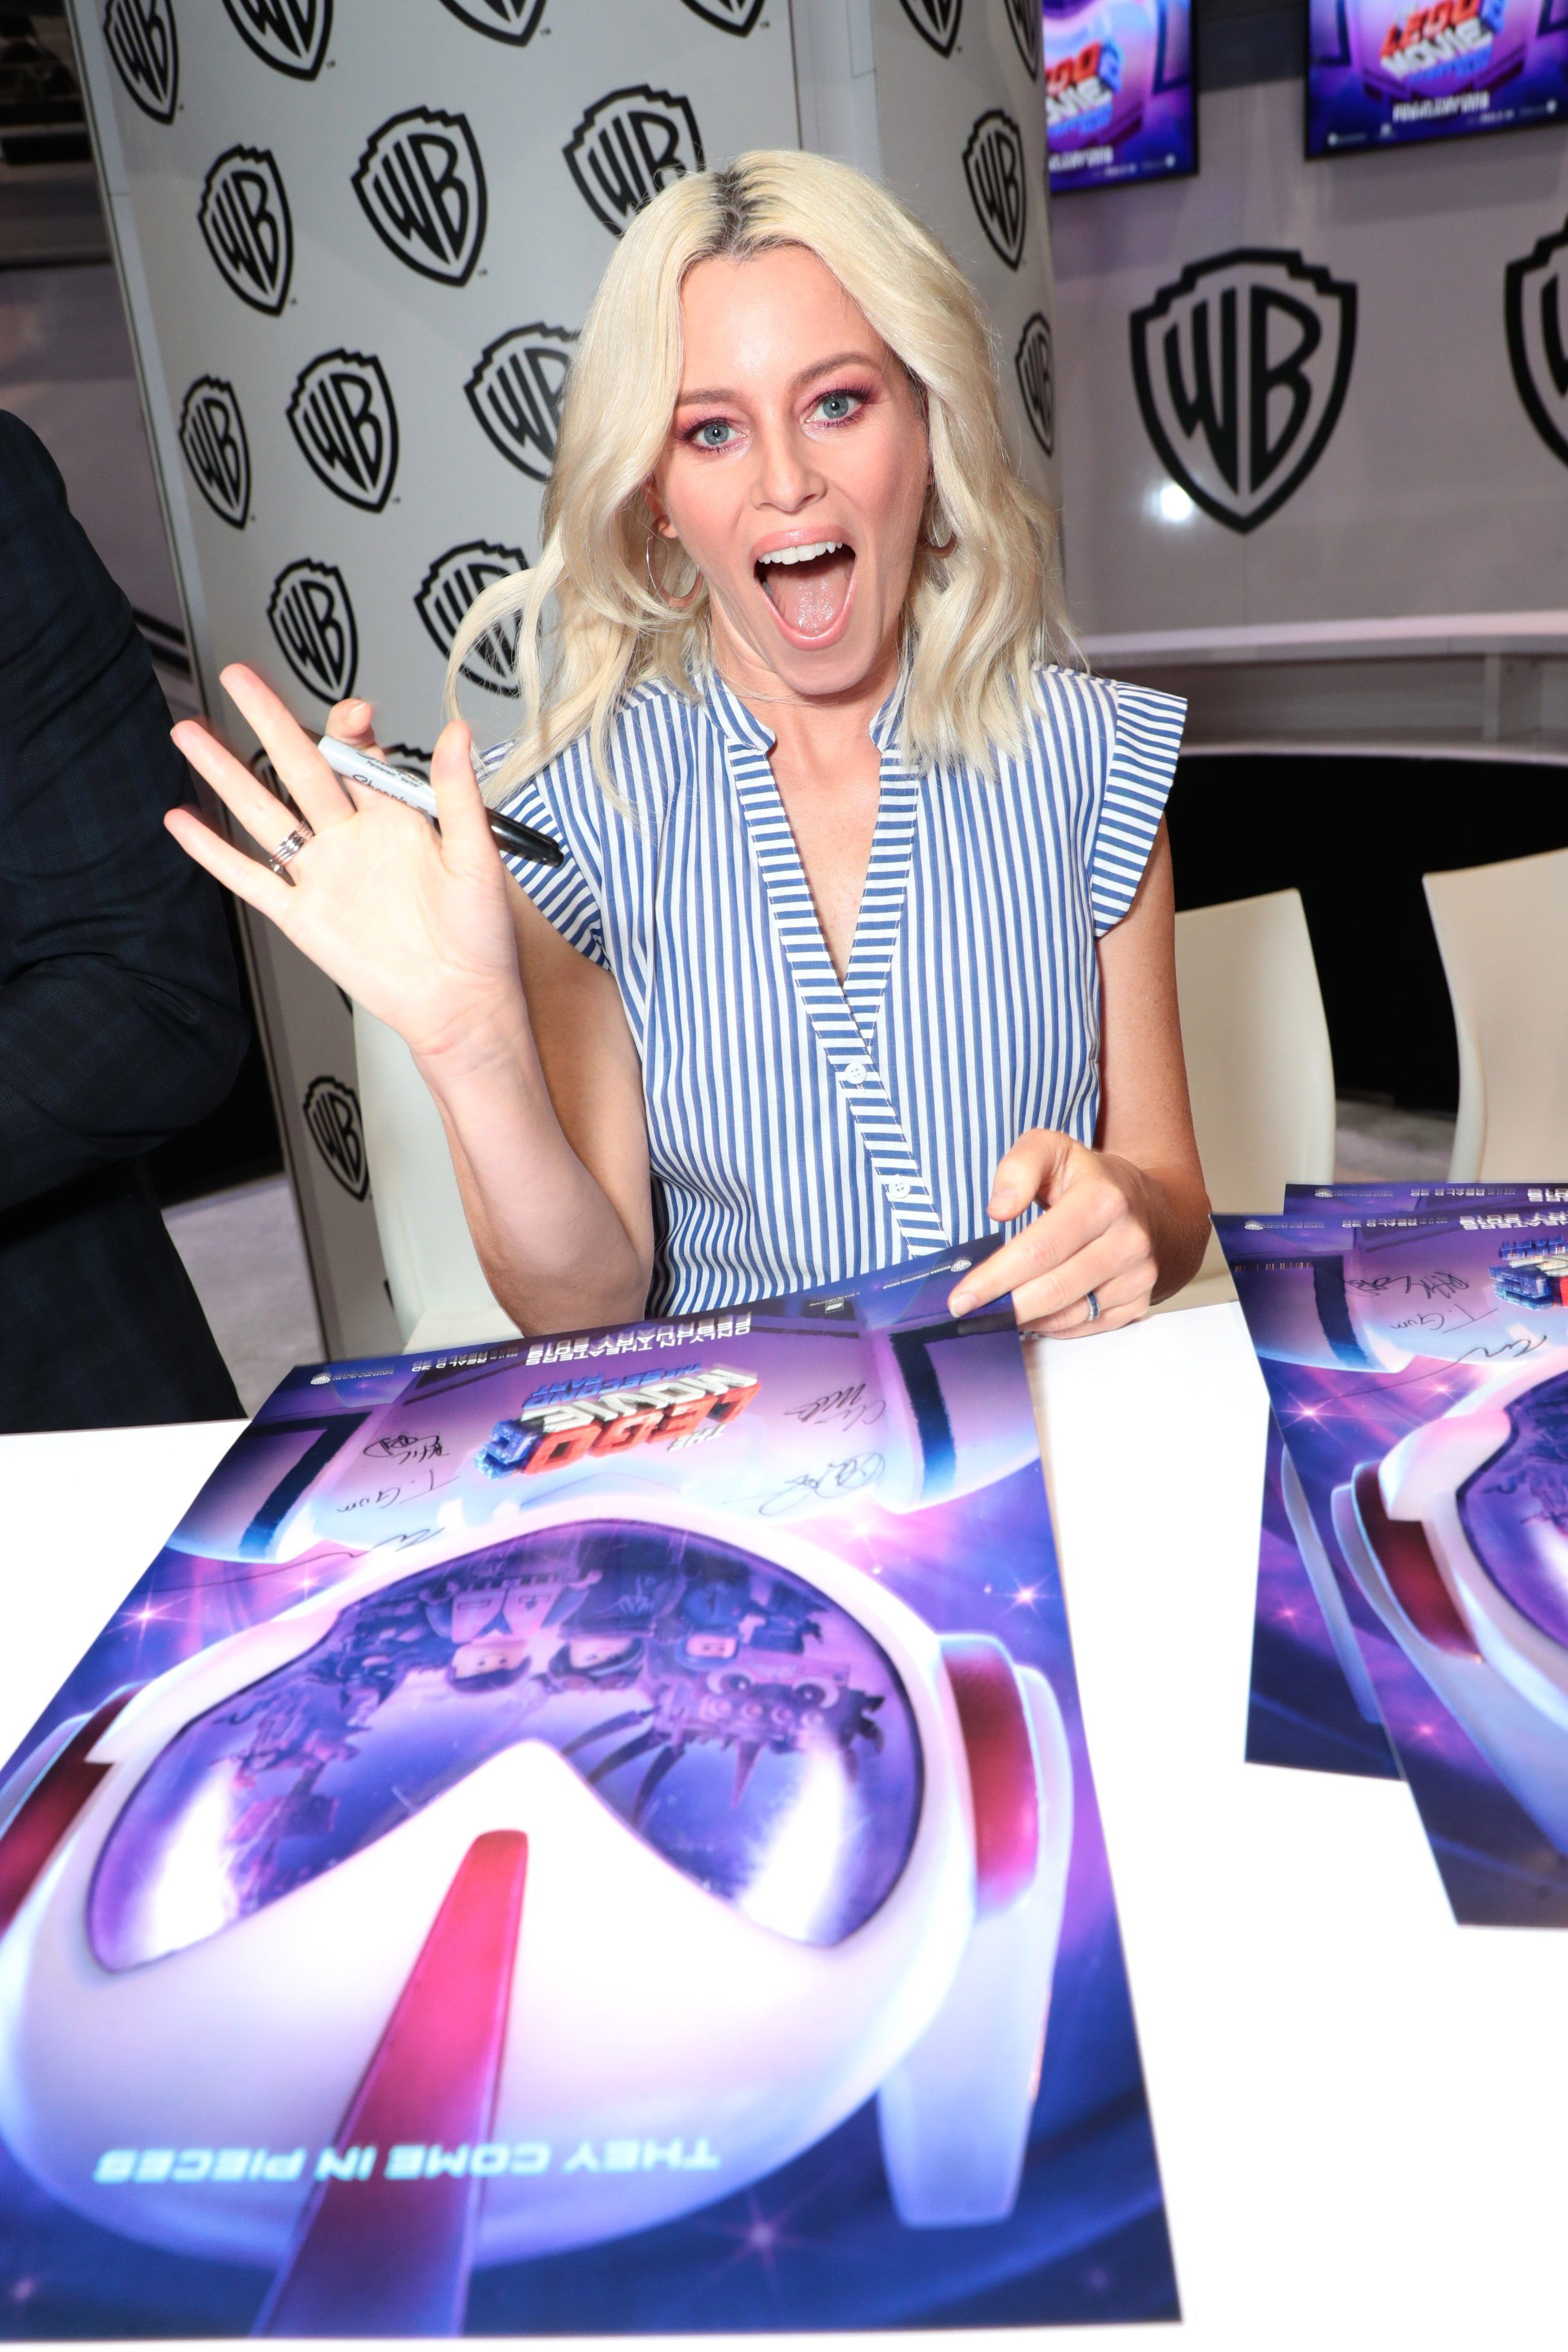 Elizabeth Banks attends Warner Bros. 'Lego Movie 2: The Second Part' signing at 2018 Comic Con in San Diego, Calif., on July 21, 2018.